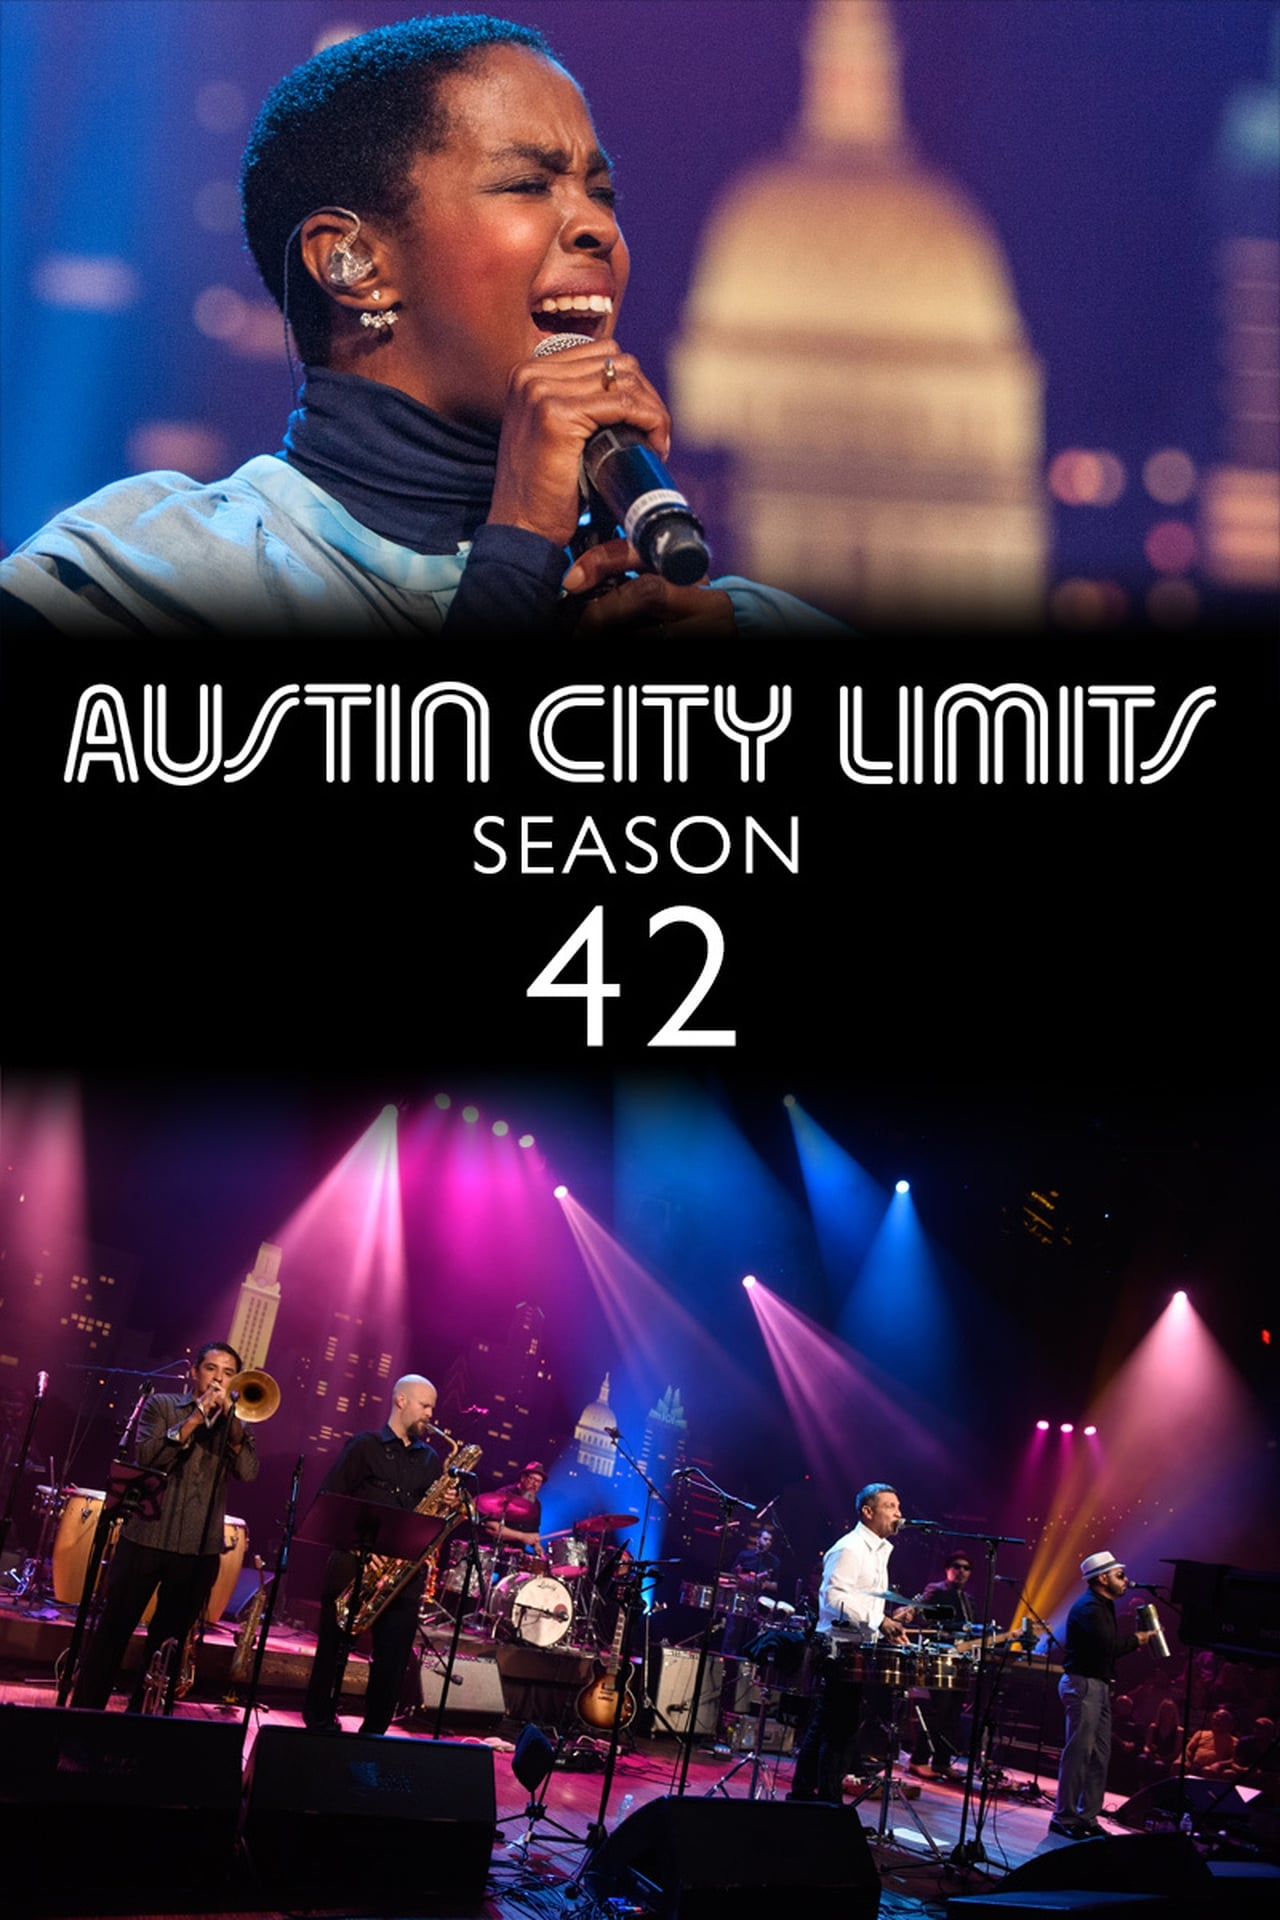 Putlocker Austin City Limits Season 42 (2016)